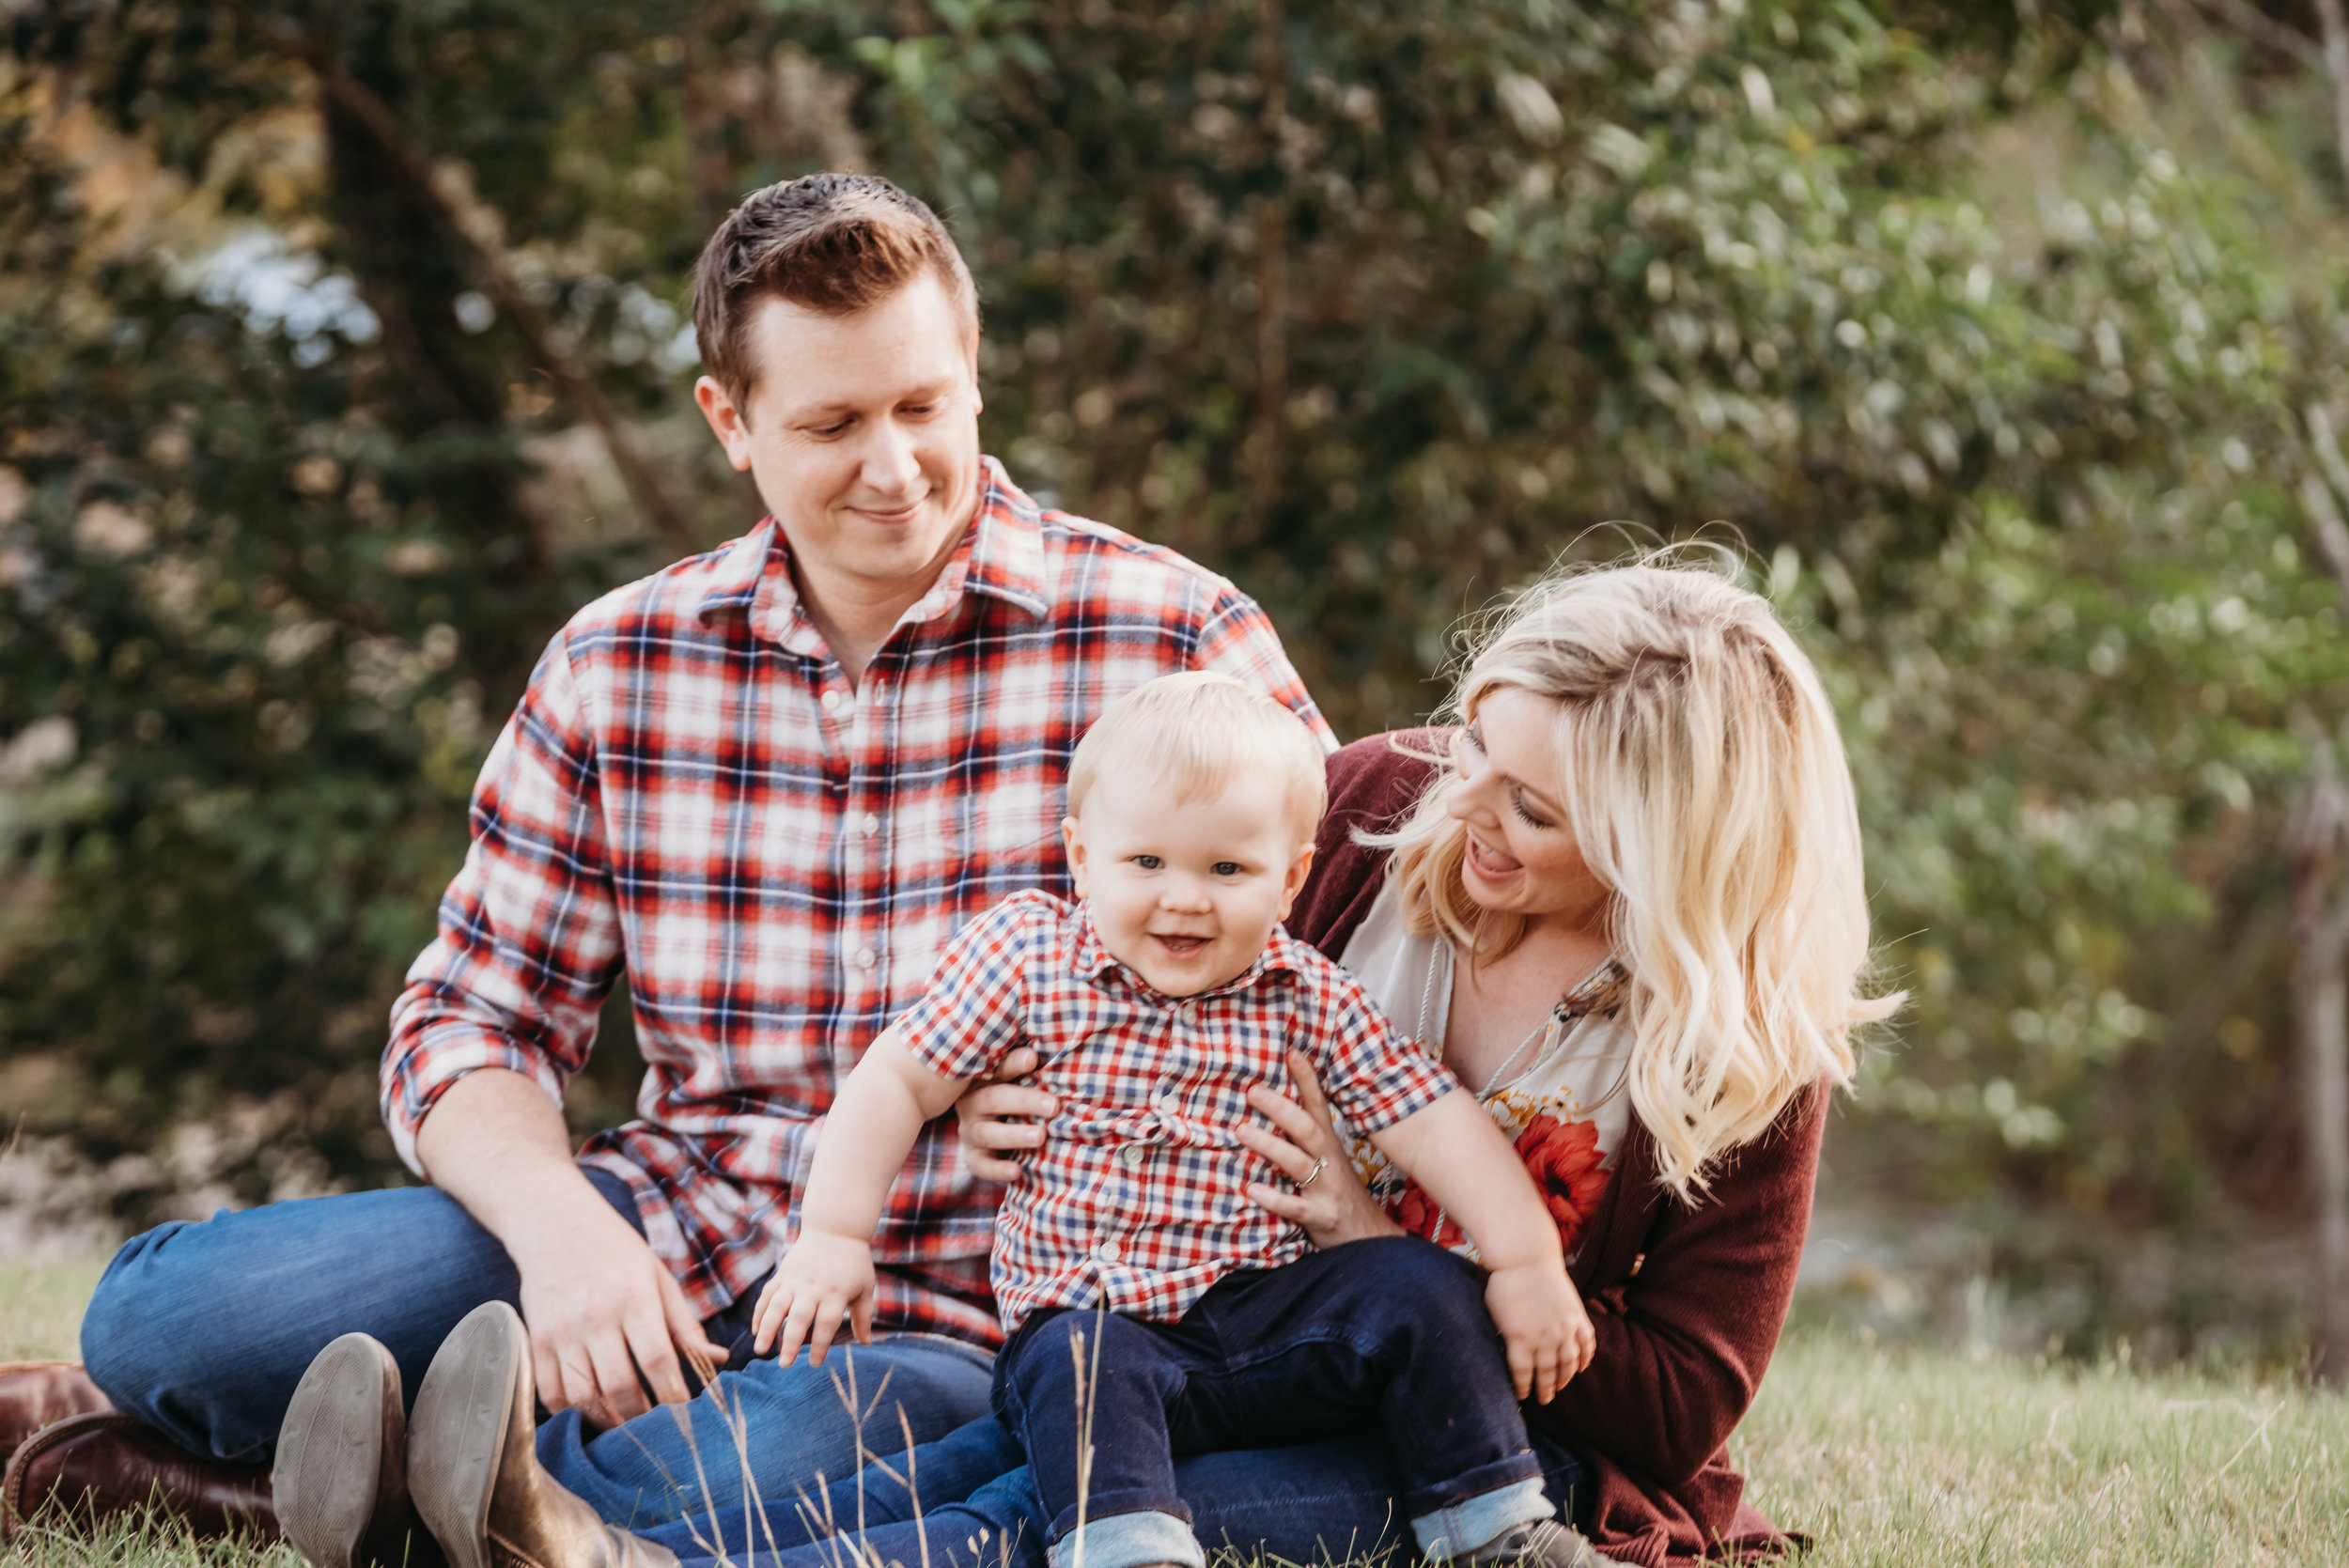 Round Rock Texas Family and Children Photographer-Emily Ingalls Photography-Austin Texas Family Photographer-Pflugerville Texas Family Photographer - Georgetown Texas Photographer